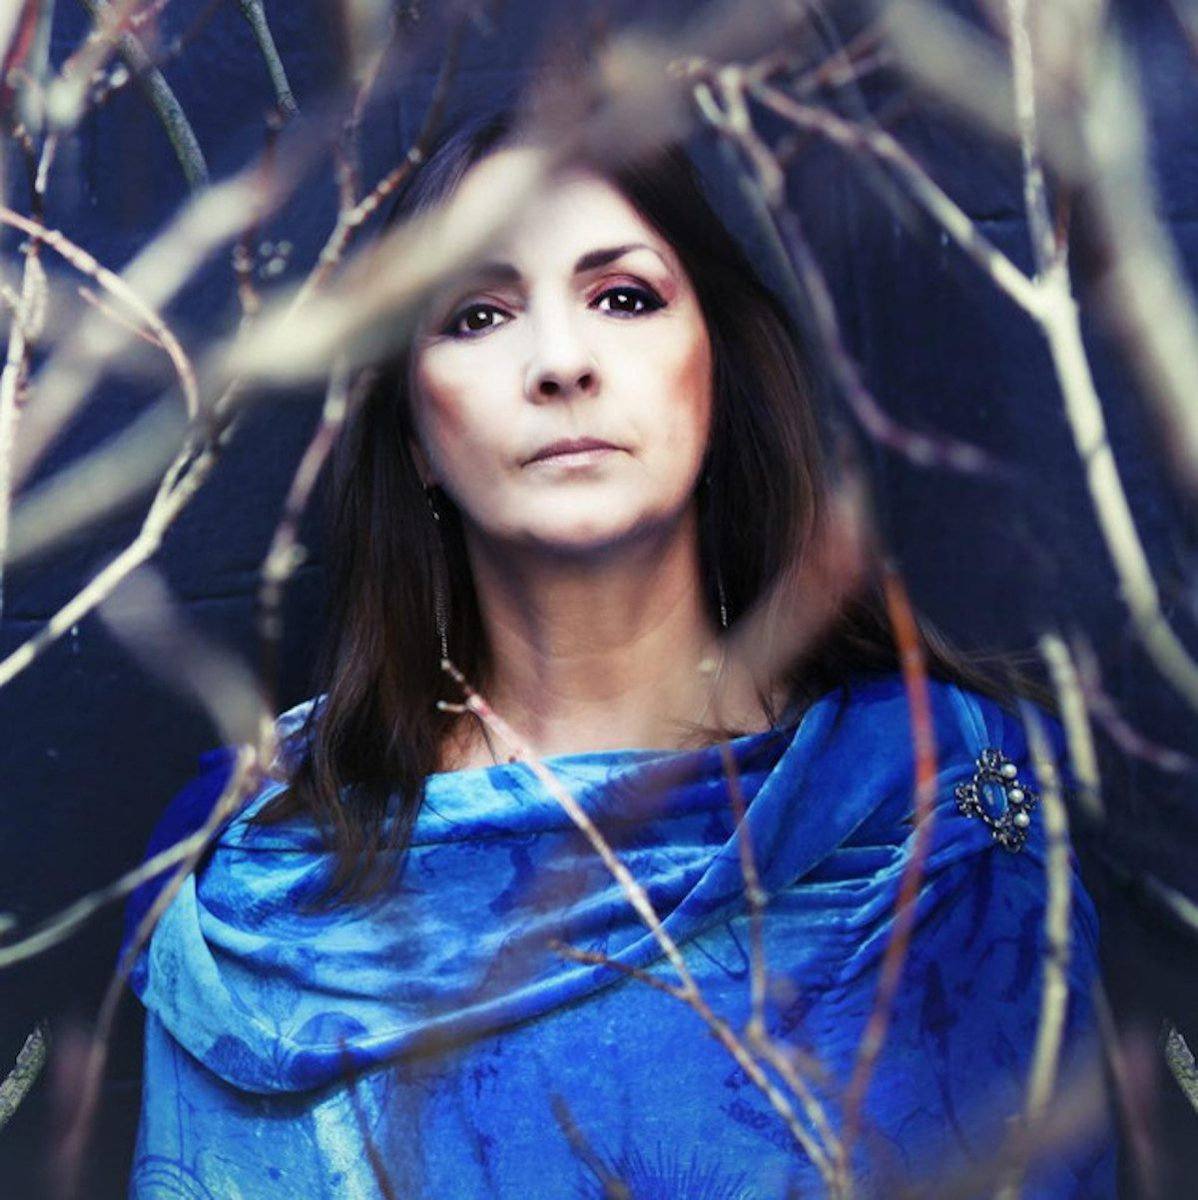 Clannad's Moya Brennan teams up with Trance Wax on 'Rivers' - check out the video